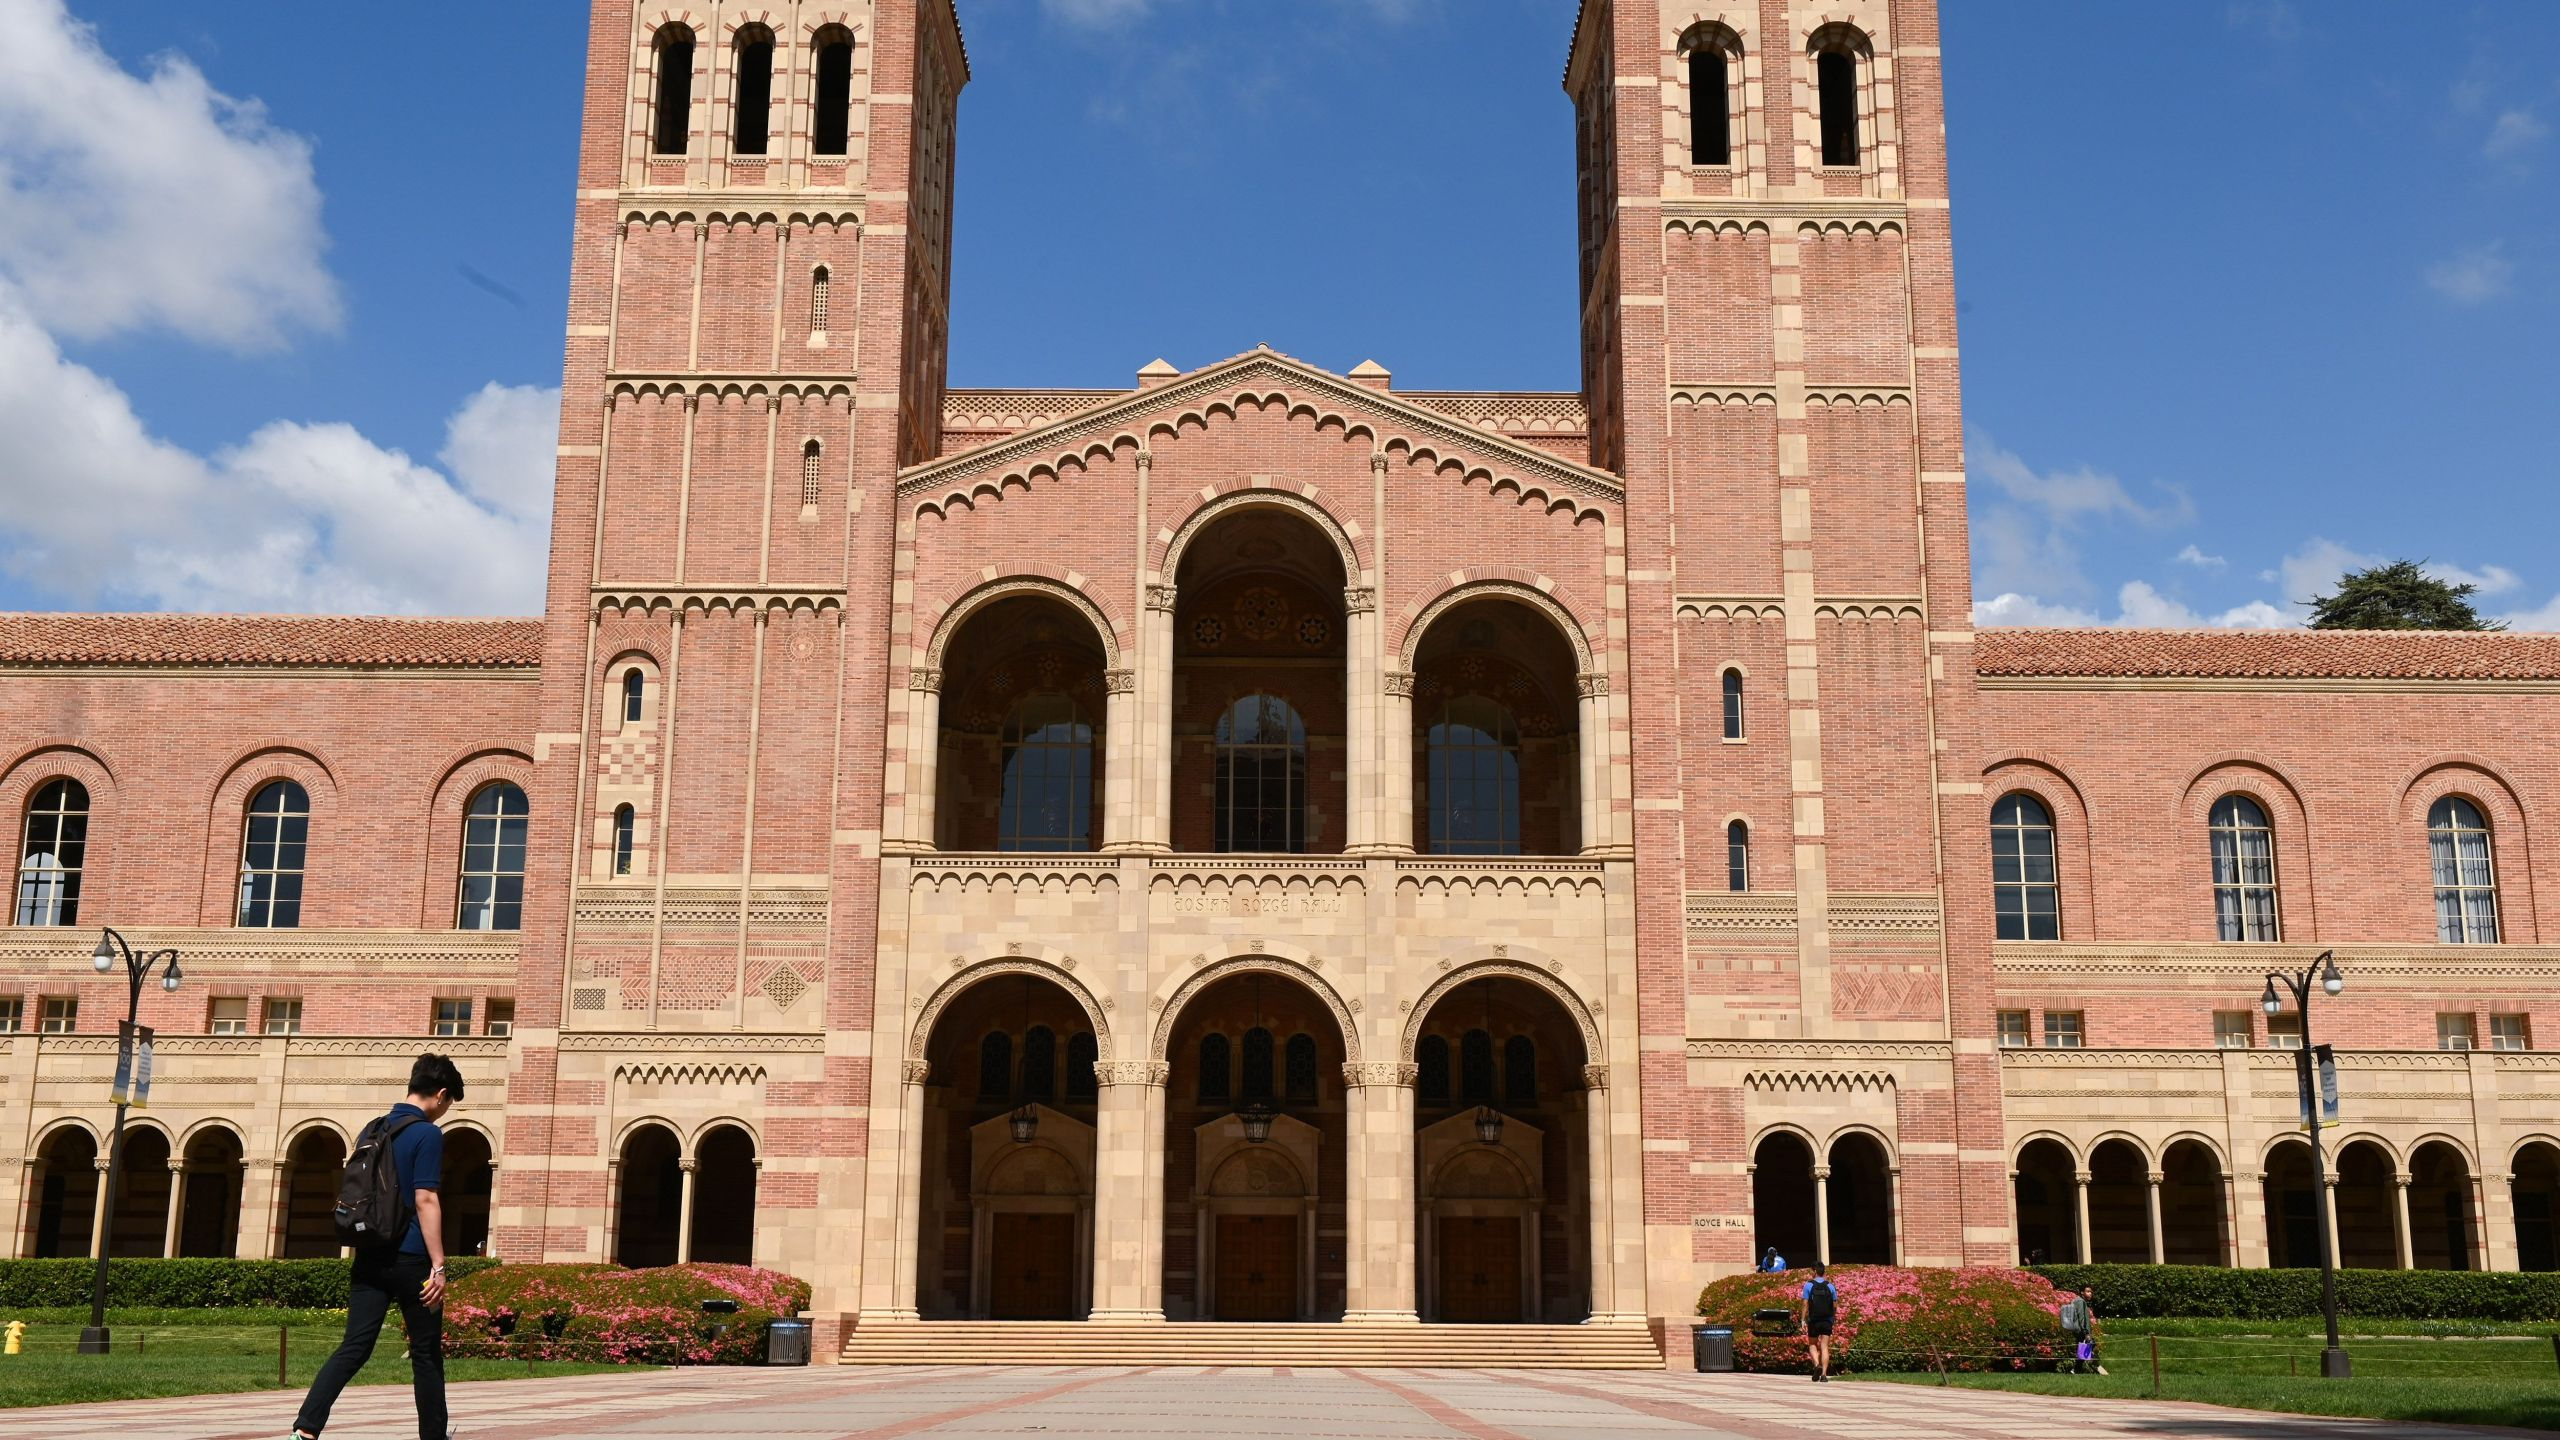 A student walks toward Royce Hall on the campus of UCLA on March 11, 2020. (ROBYN BECK/AFP via Getty Images)